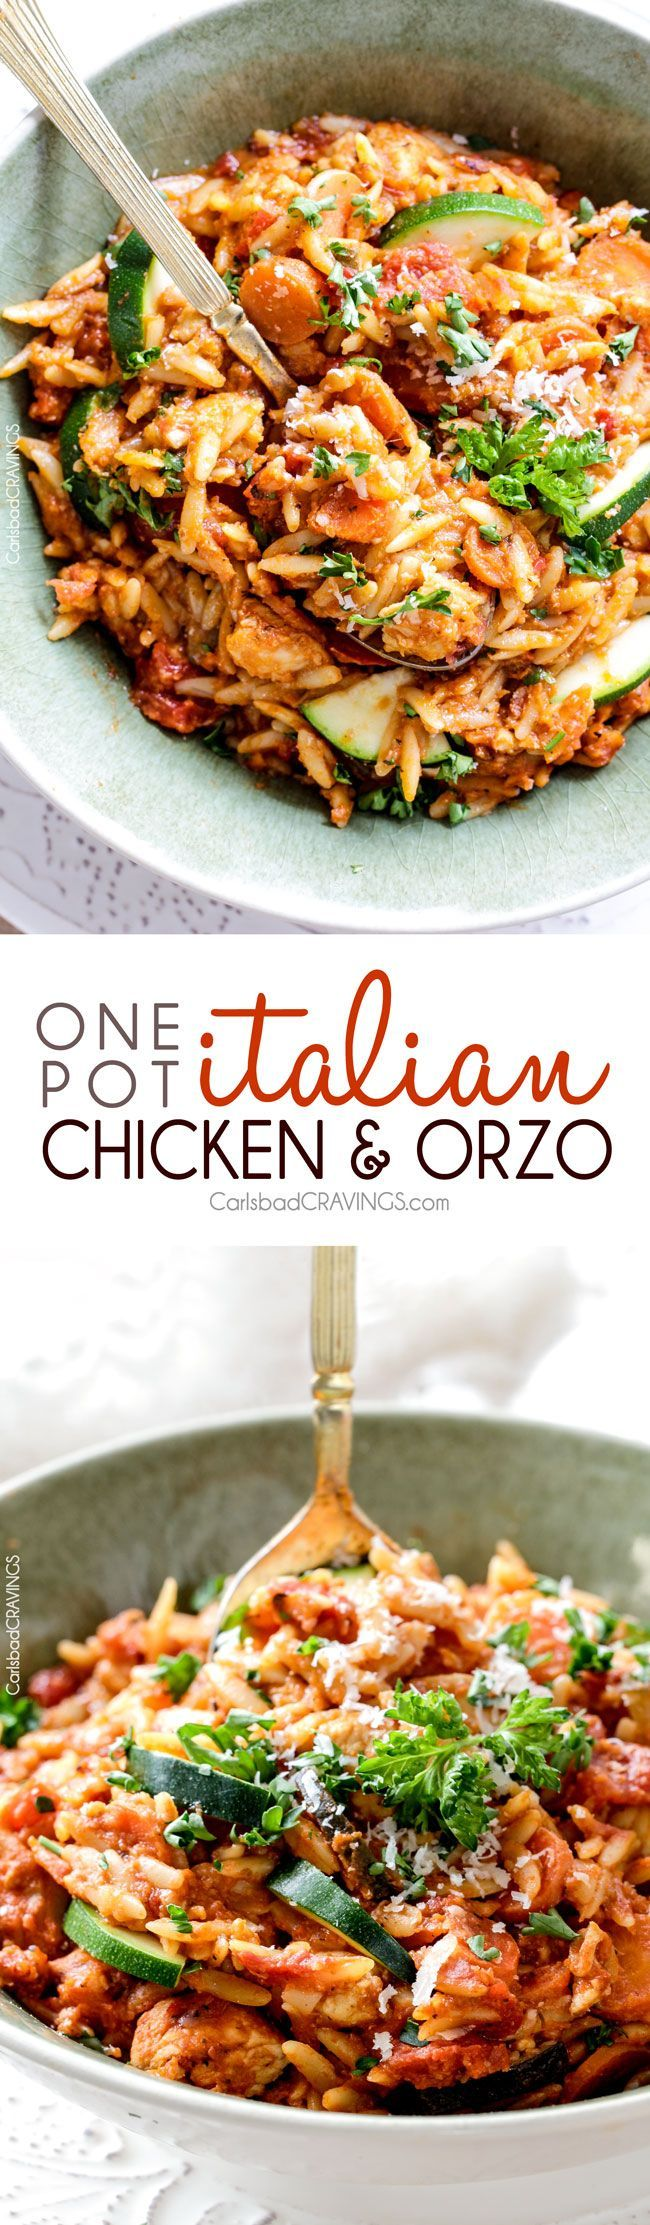 ONE POT Italian Chicken and Orzo (and veggies!) in a creamy Parmesan tomato sauce on your table in almost 30 minutes and all made in one pot! via @carlsbadcraving